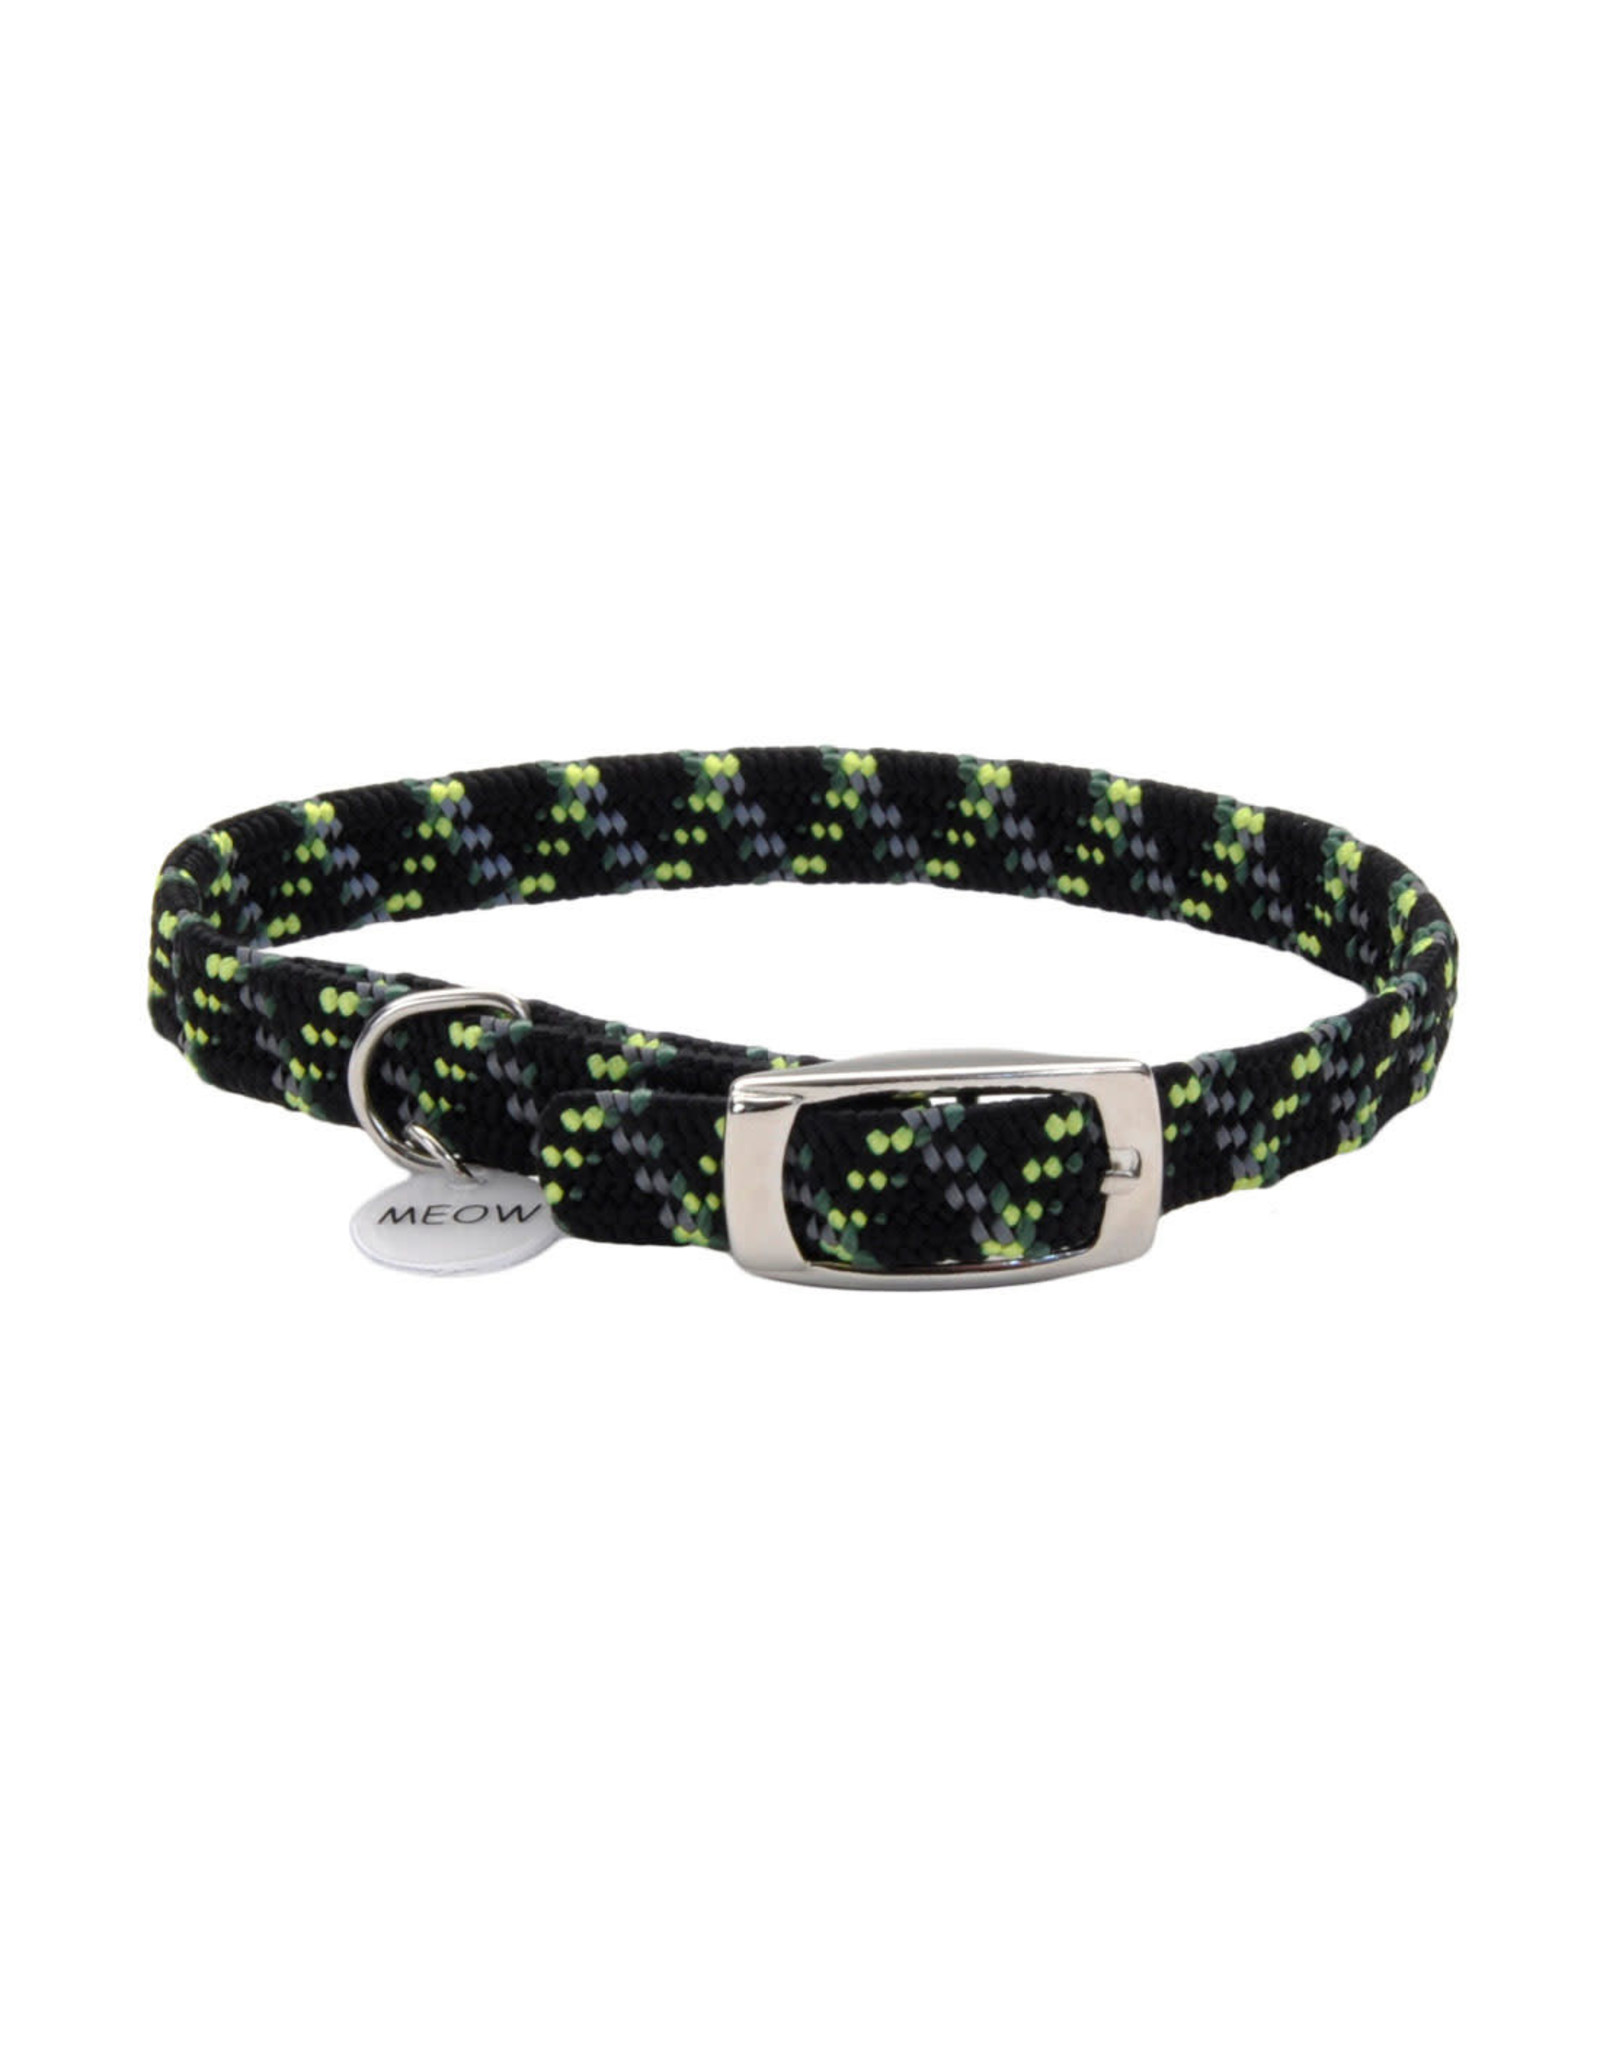 "Coastal Coastal Elasta Cat Reflective/Stretch Collar - 10 "" Black & Green"